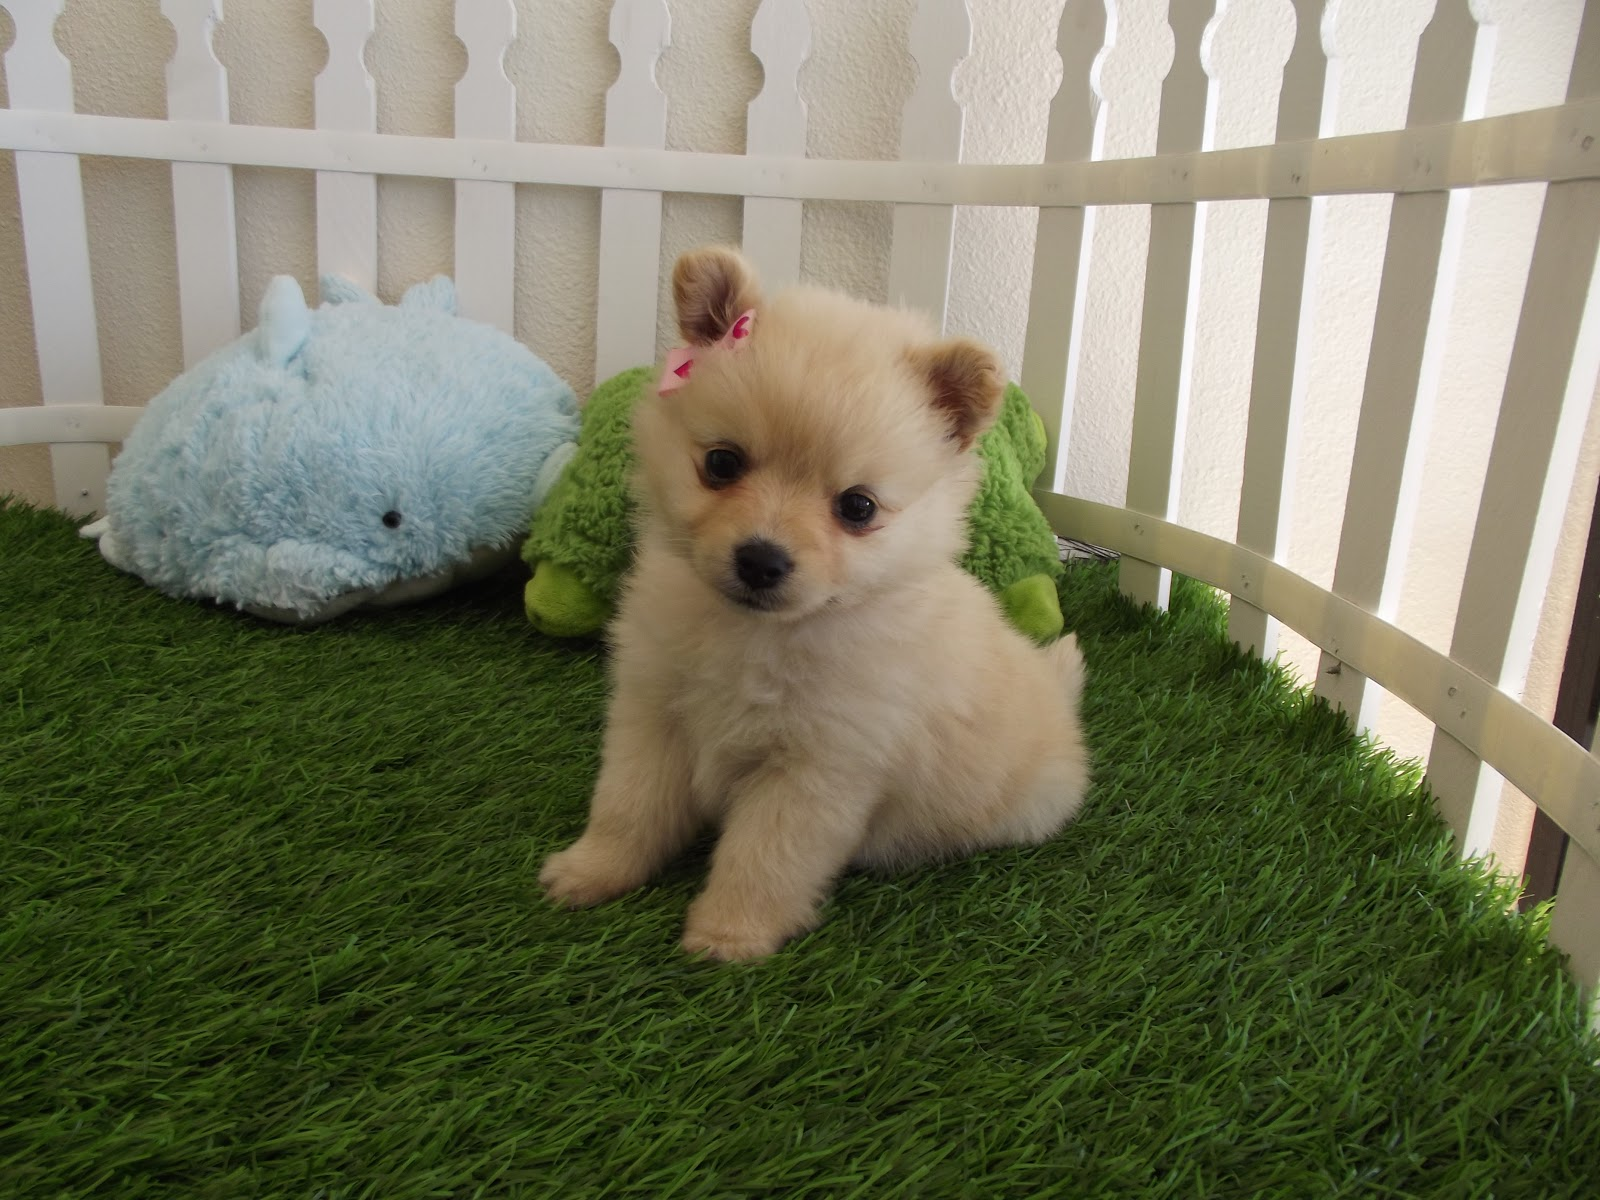 Cute Puppies HD Wallpapers Cute Puppies HD Wallpapers Check out the 1600x1200